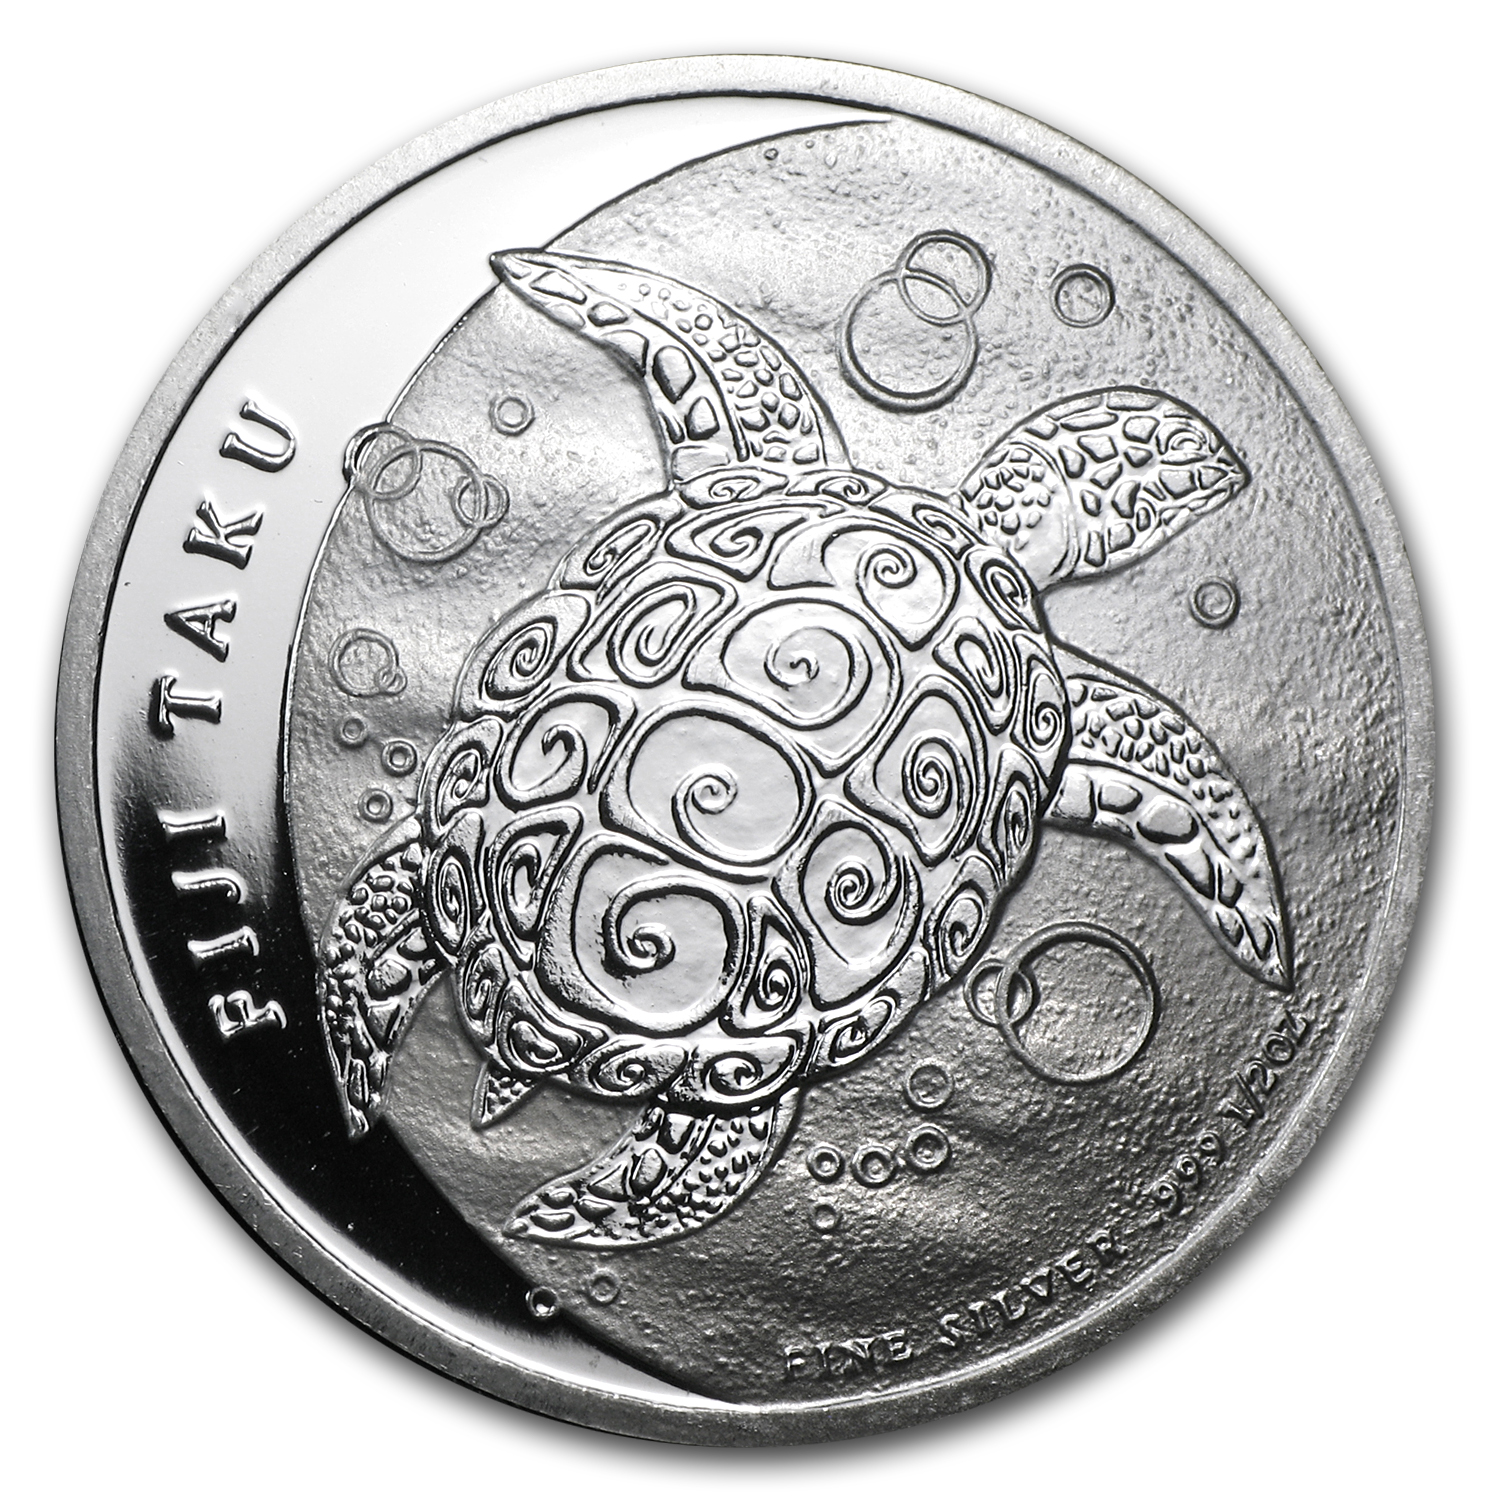 2012 1/2 oz Silver New Zealand Mint $1 Fiji Taku BU